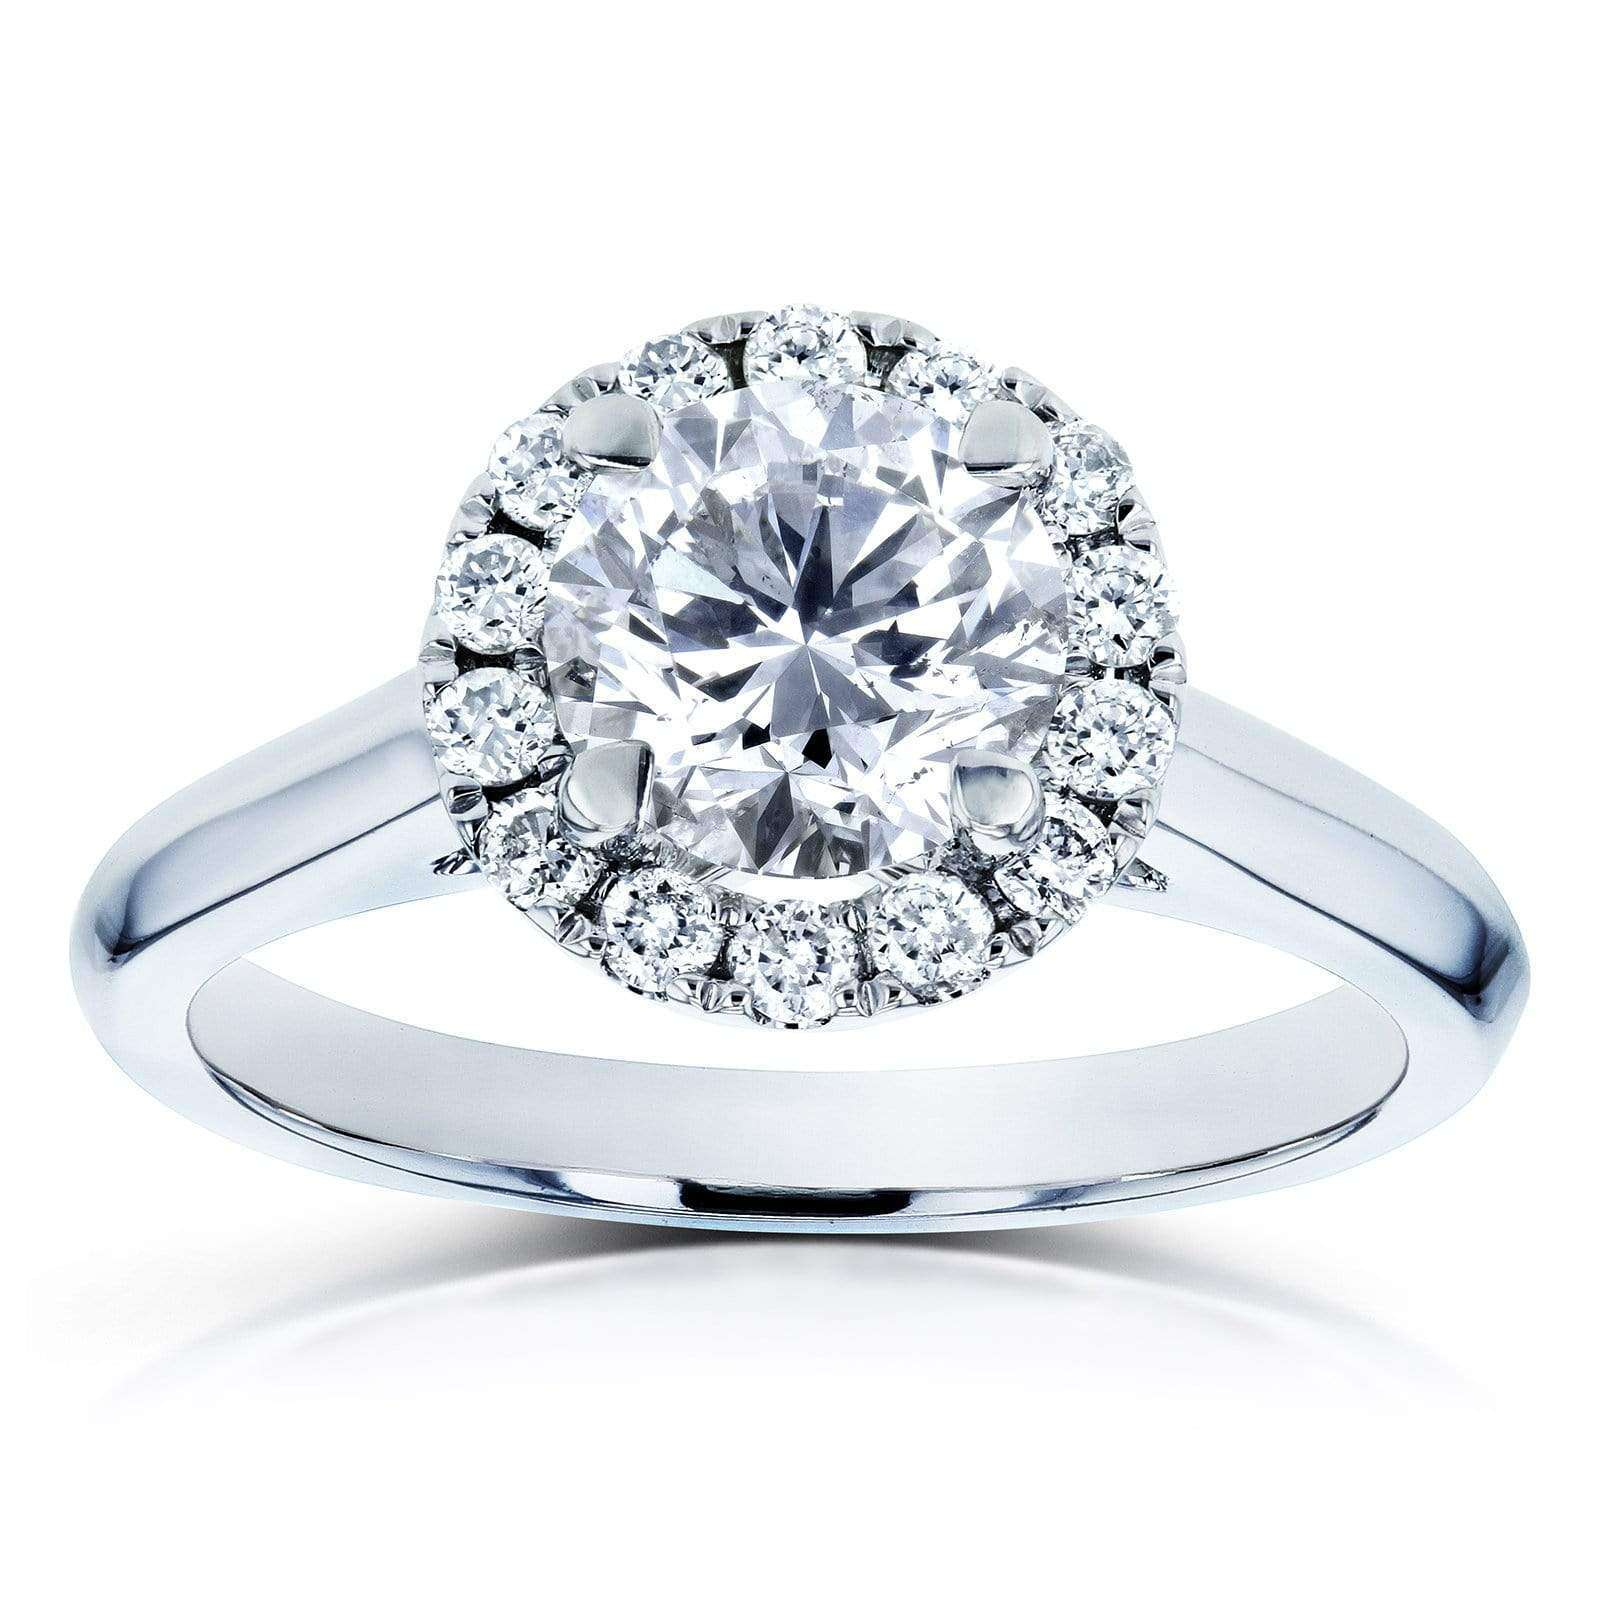 Top Diamond Halo Engagement Ring 1 1/4 TCW in 14k White Gold - 11